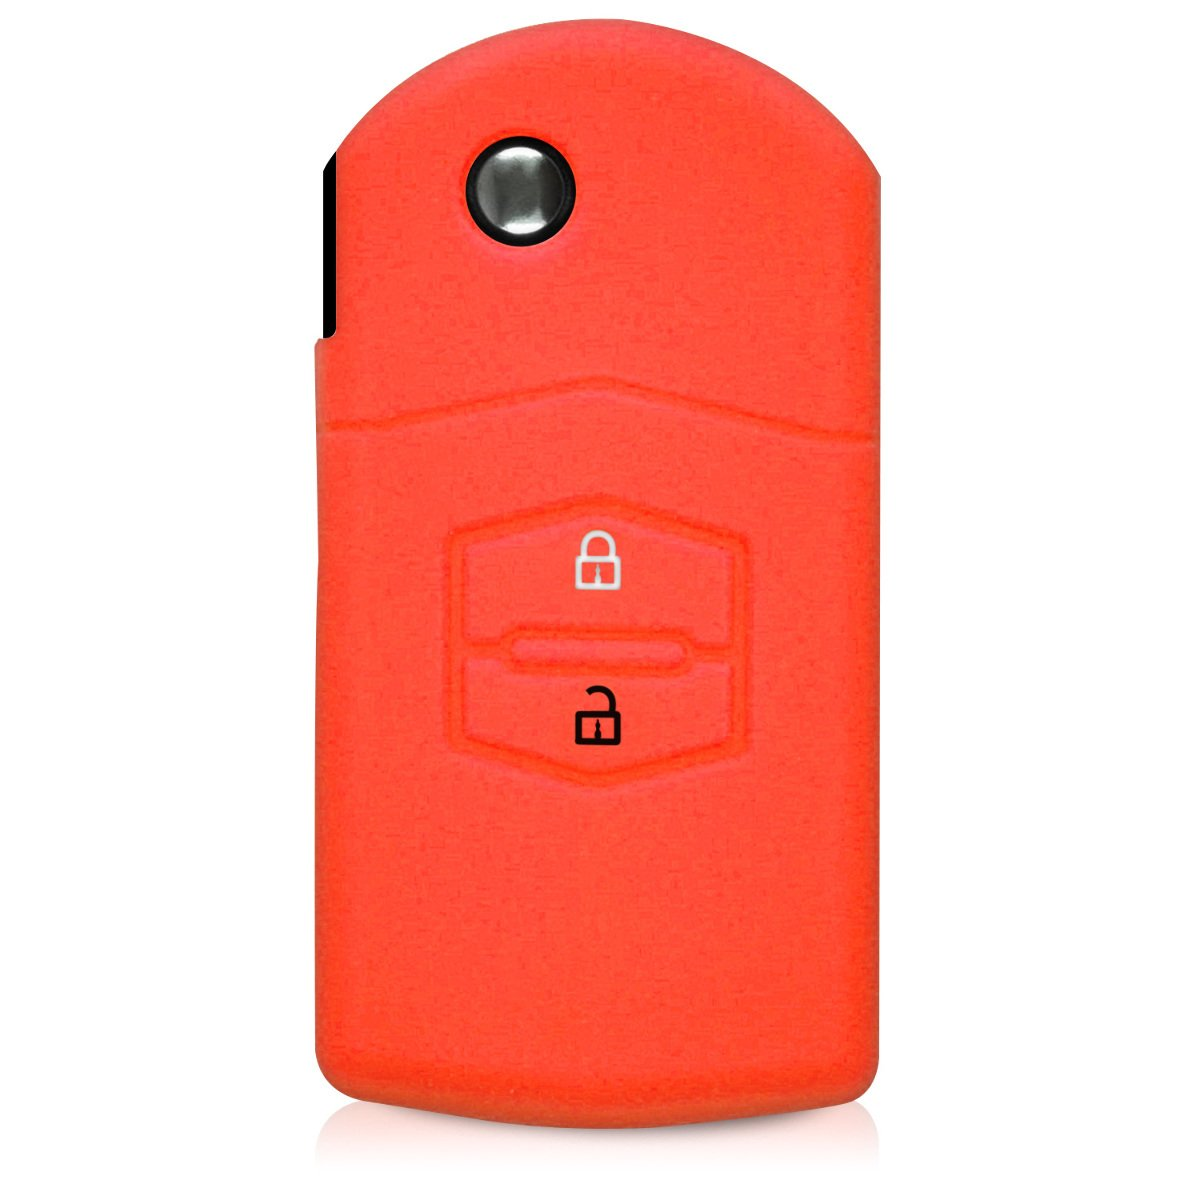 Silicone Protective Key Fob Cover for Mazda 2 Button Car Key Red//Black kwmobile Car Key Cover for Mazda